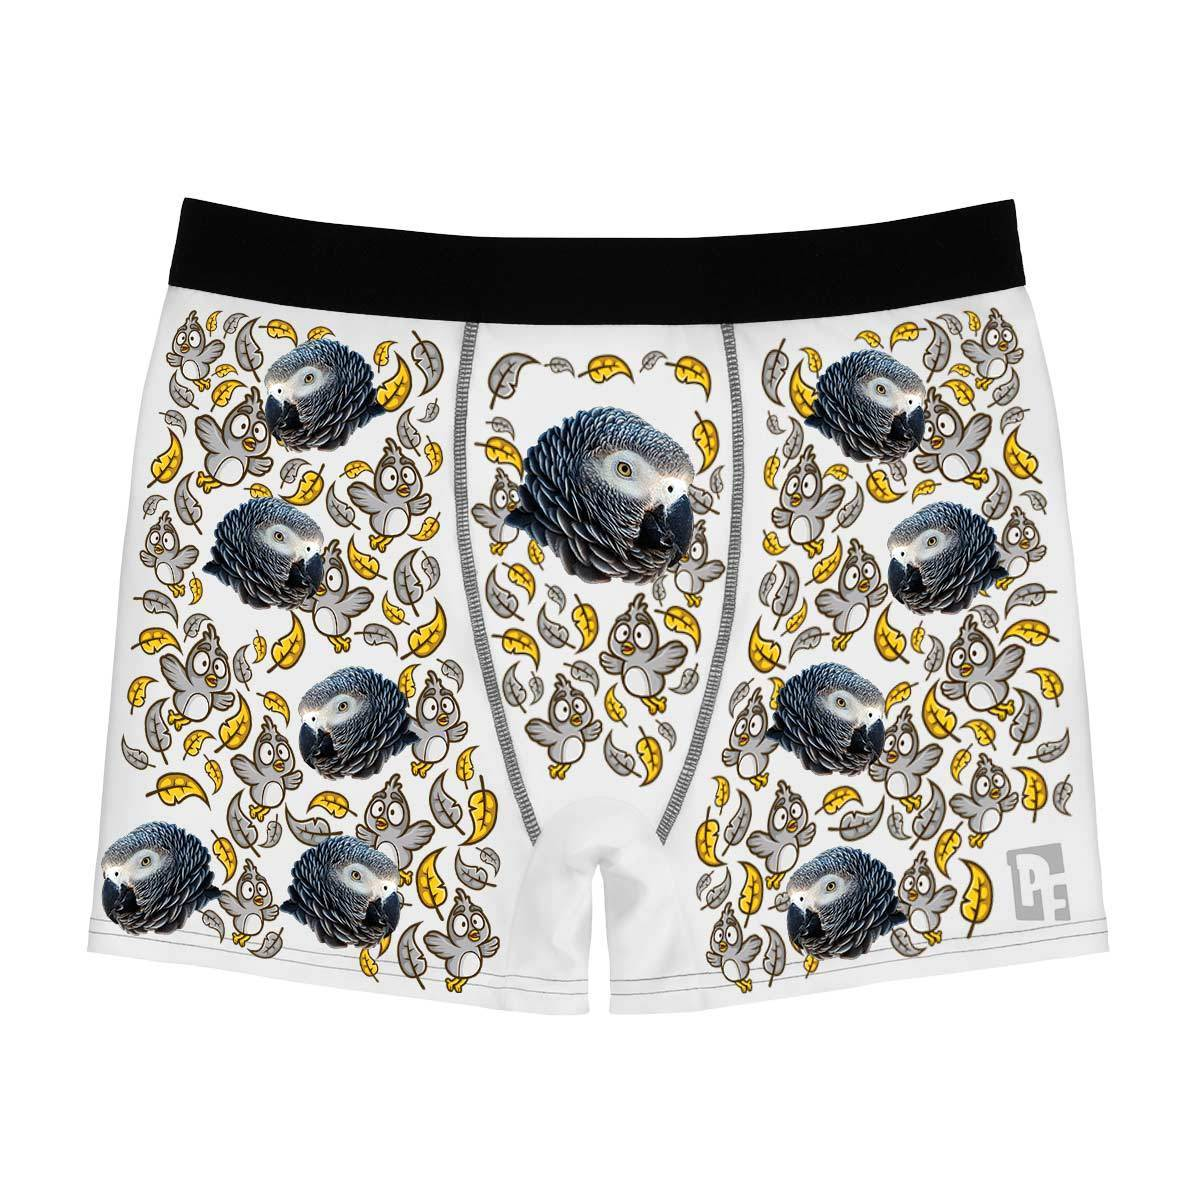 White Bird men's boxer briefs personalized with photo printed on them